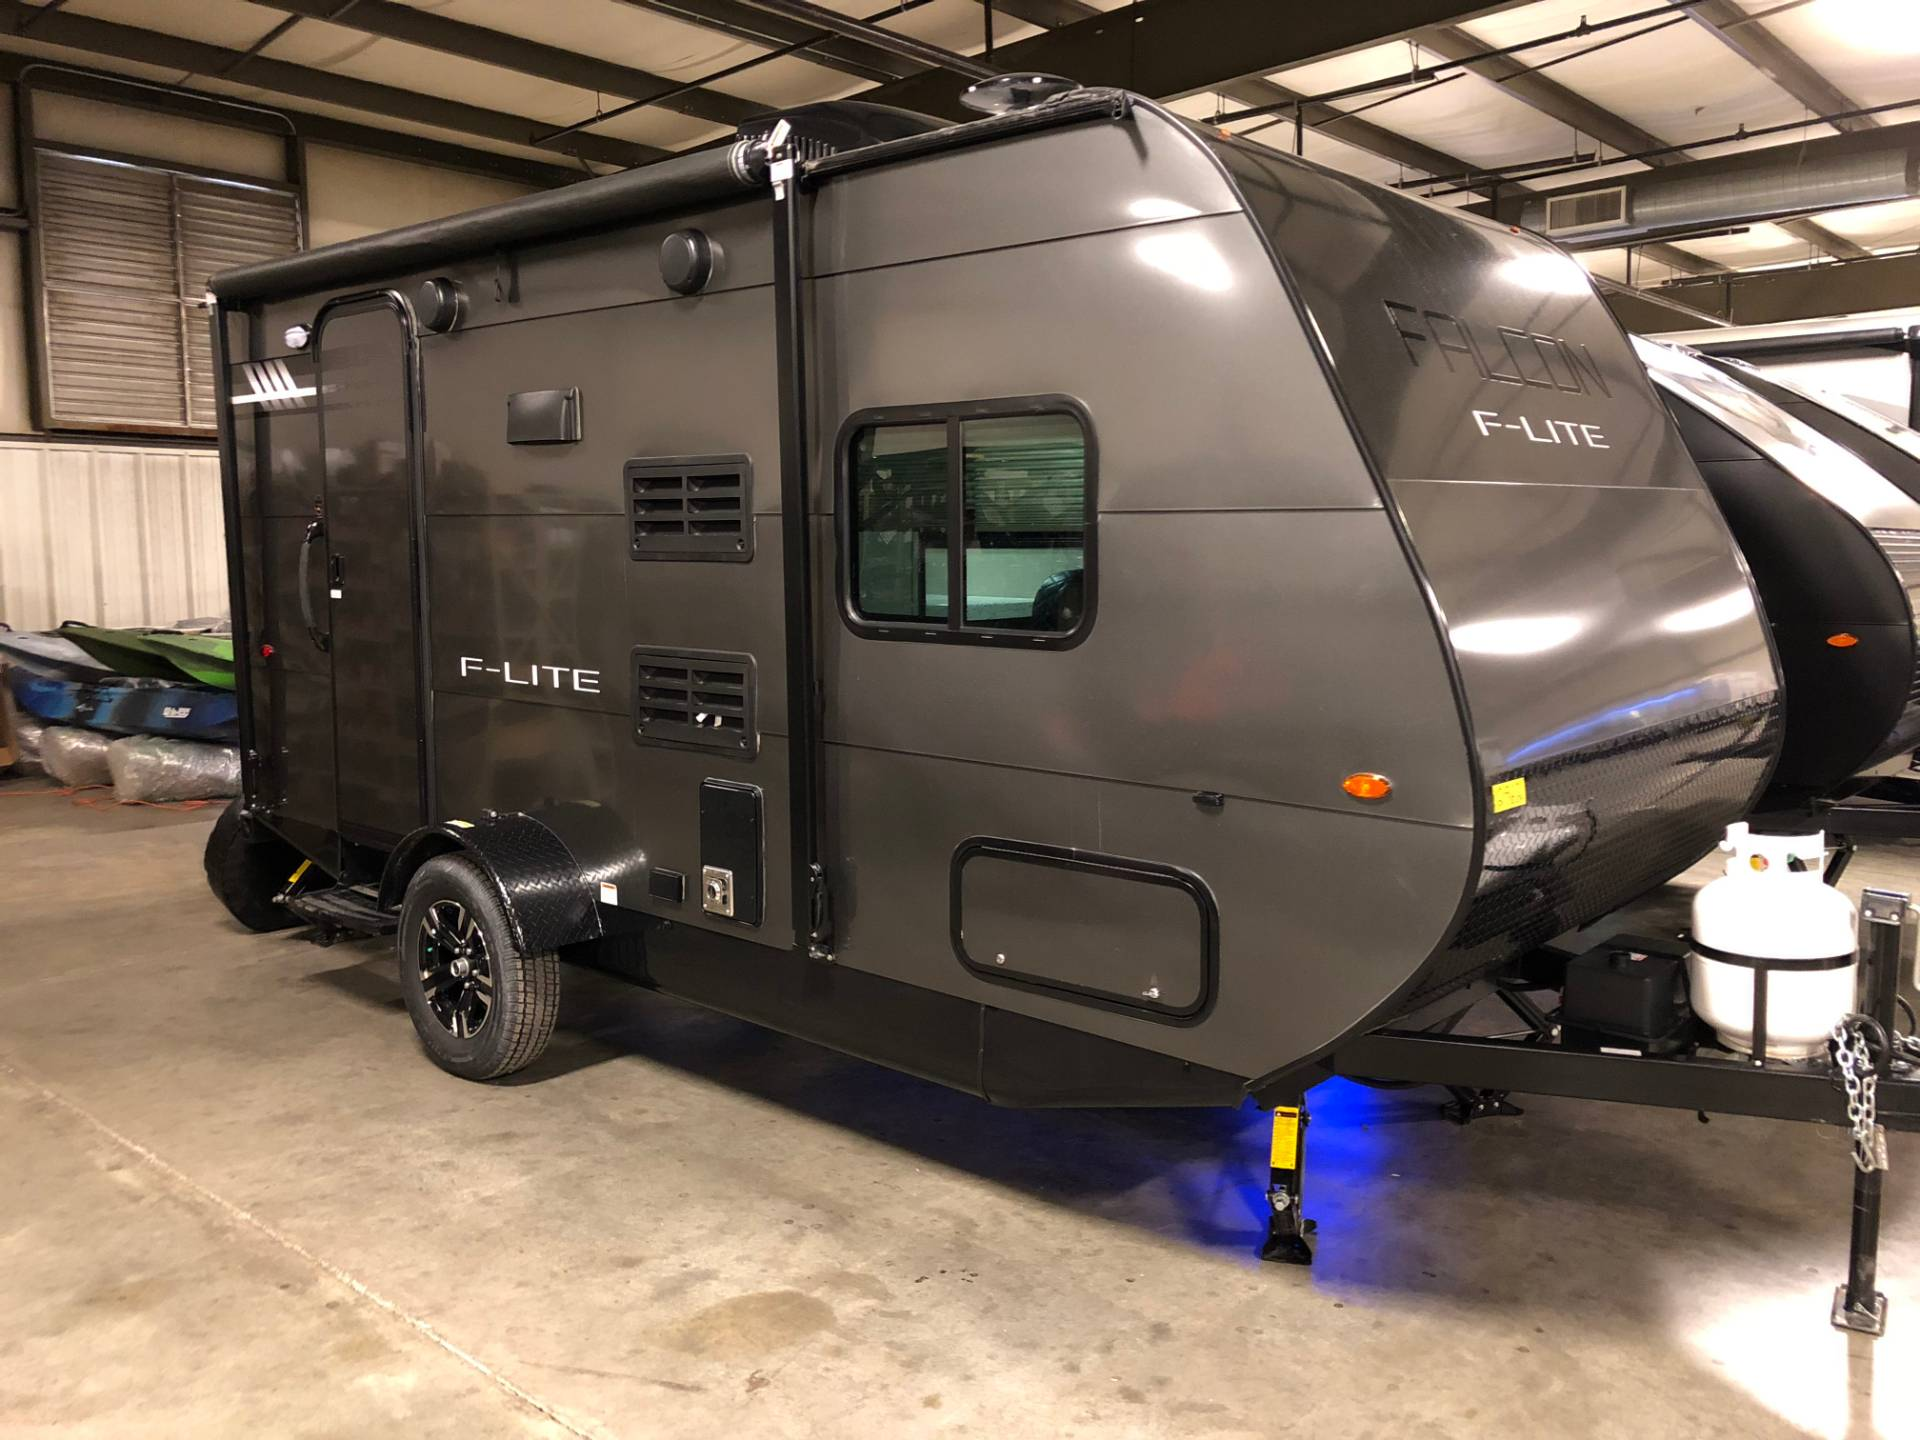 2019 Travel Lite RV FALCON F-LITE FL-18RB in Louisville, Kentucky